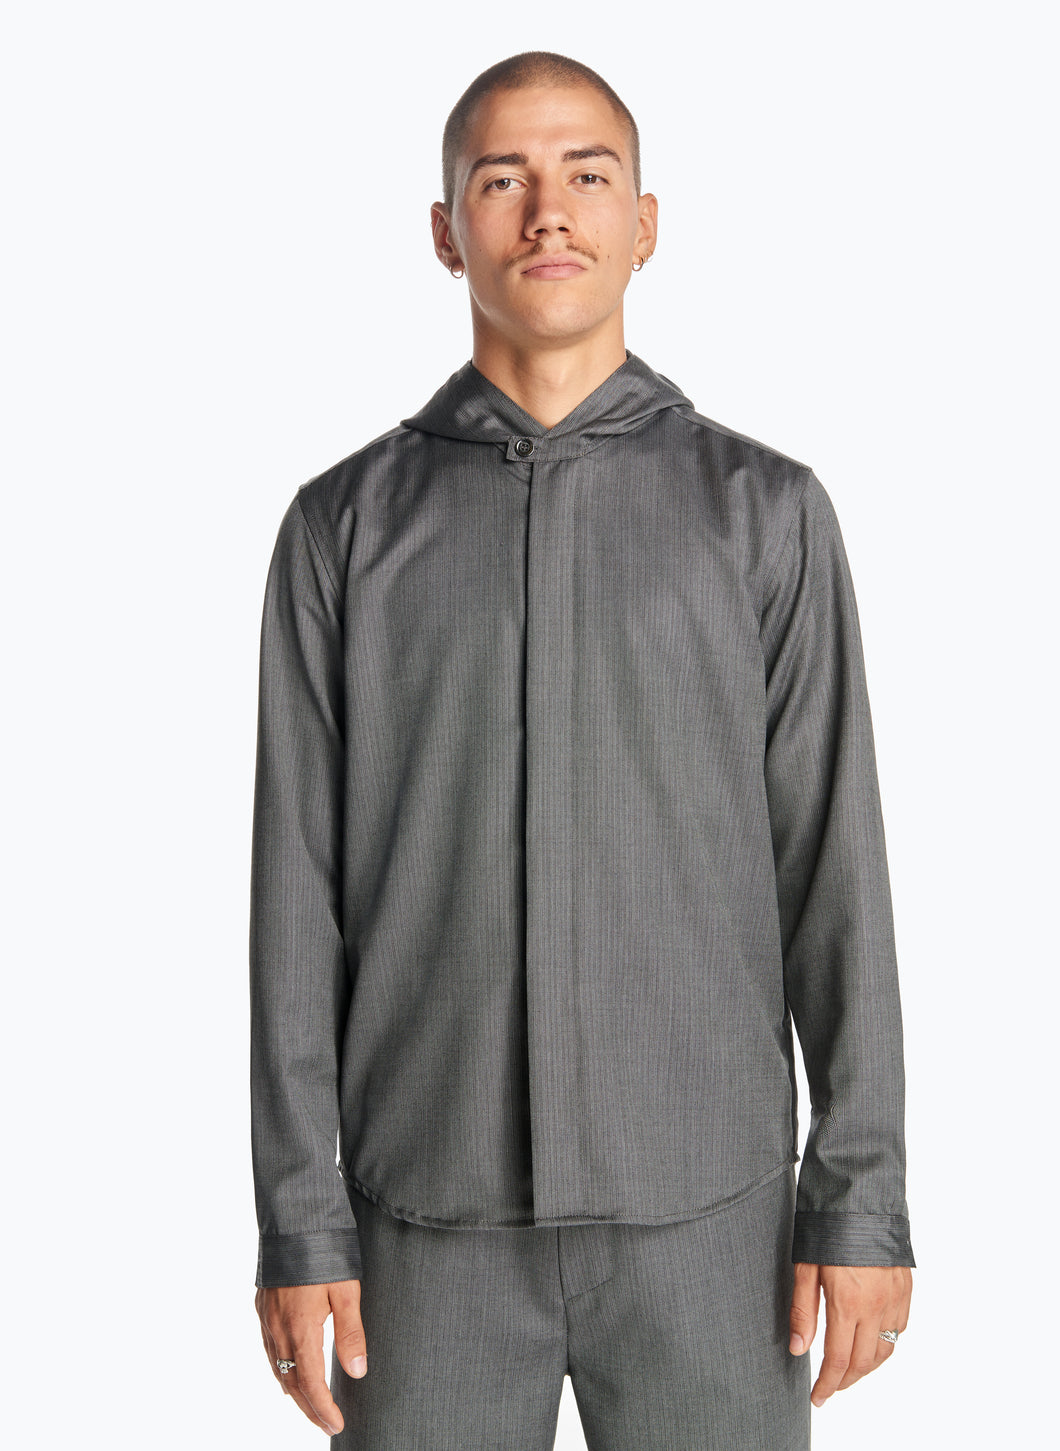 Hooded Overshirt in Grey Striped Cool Wool